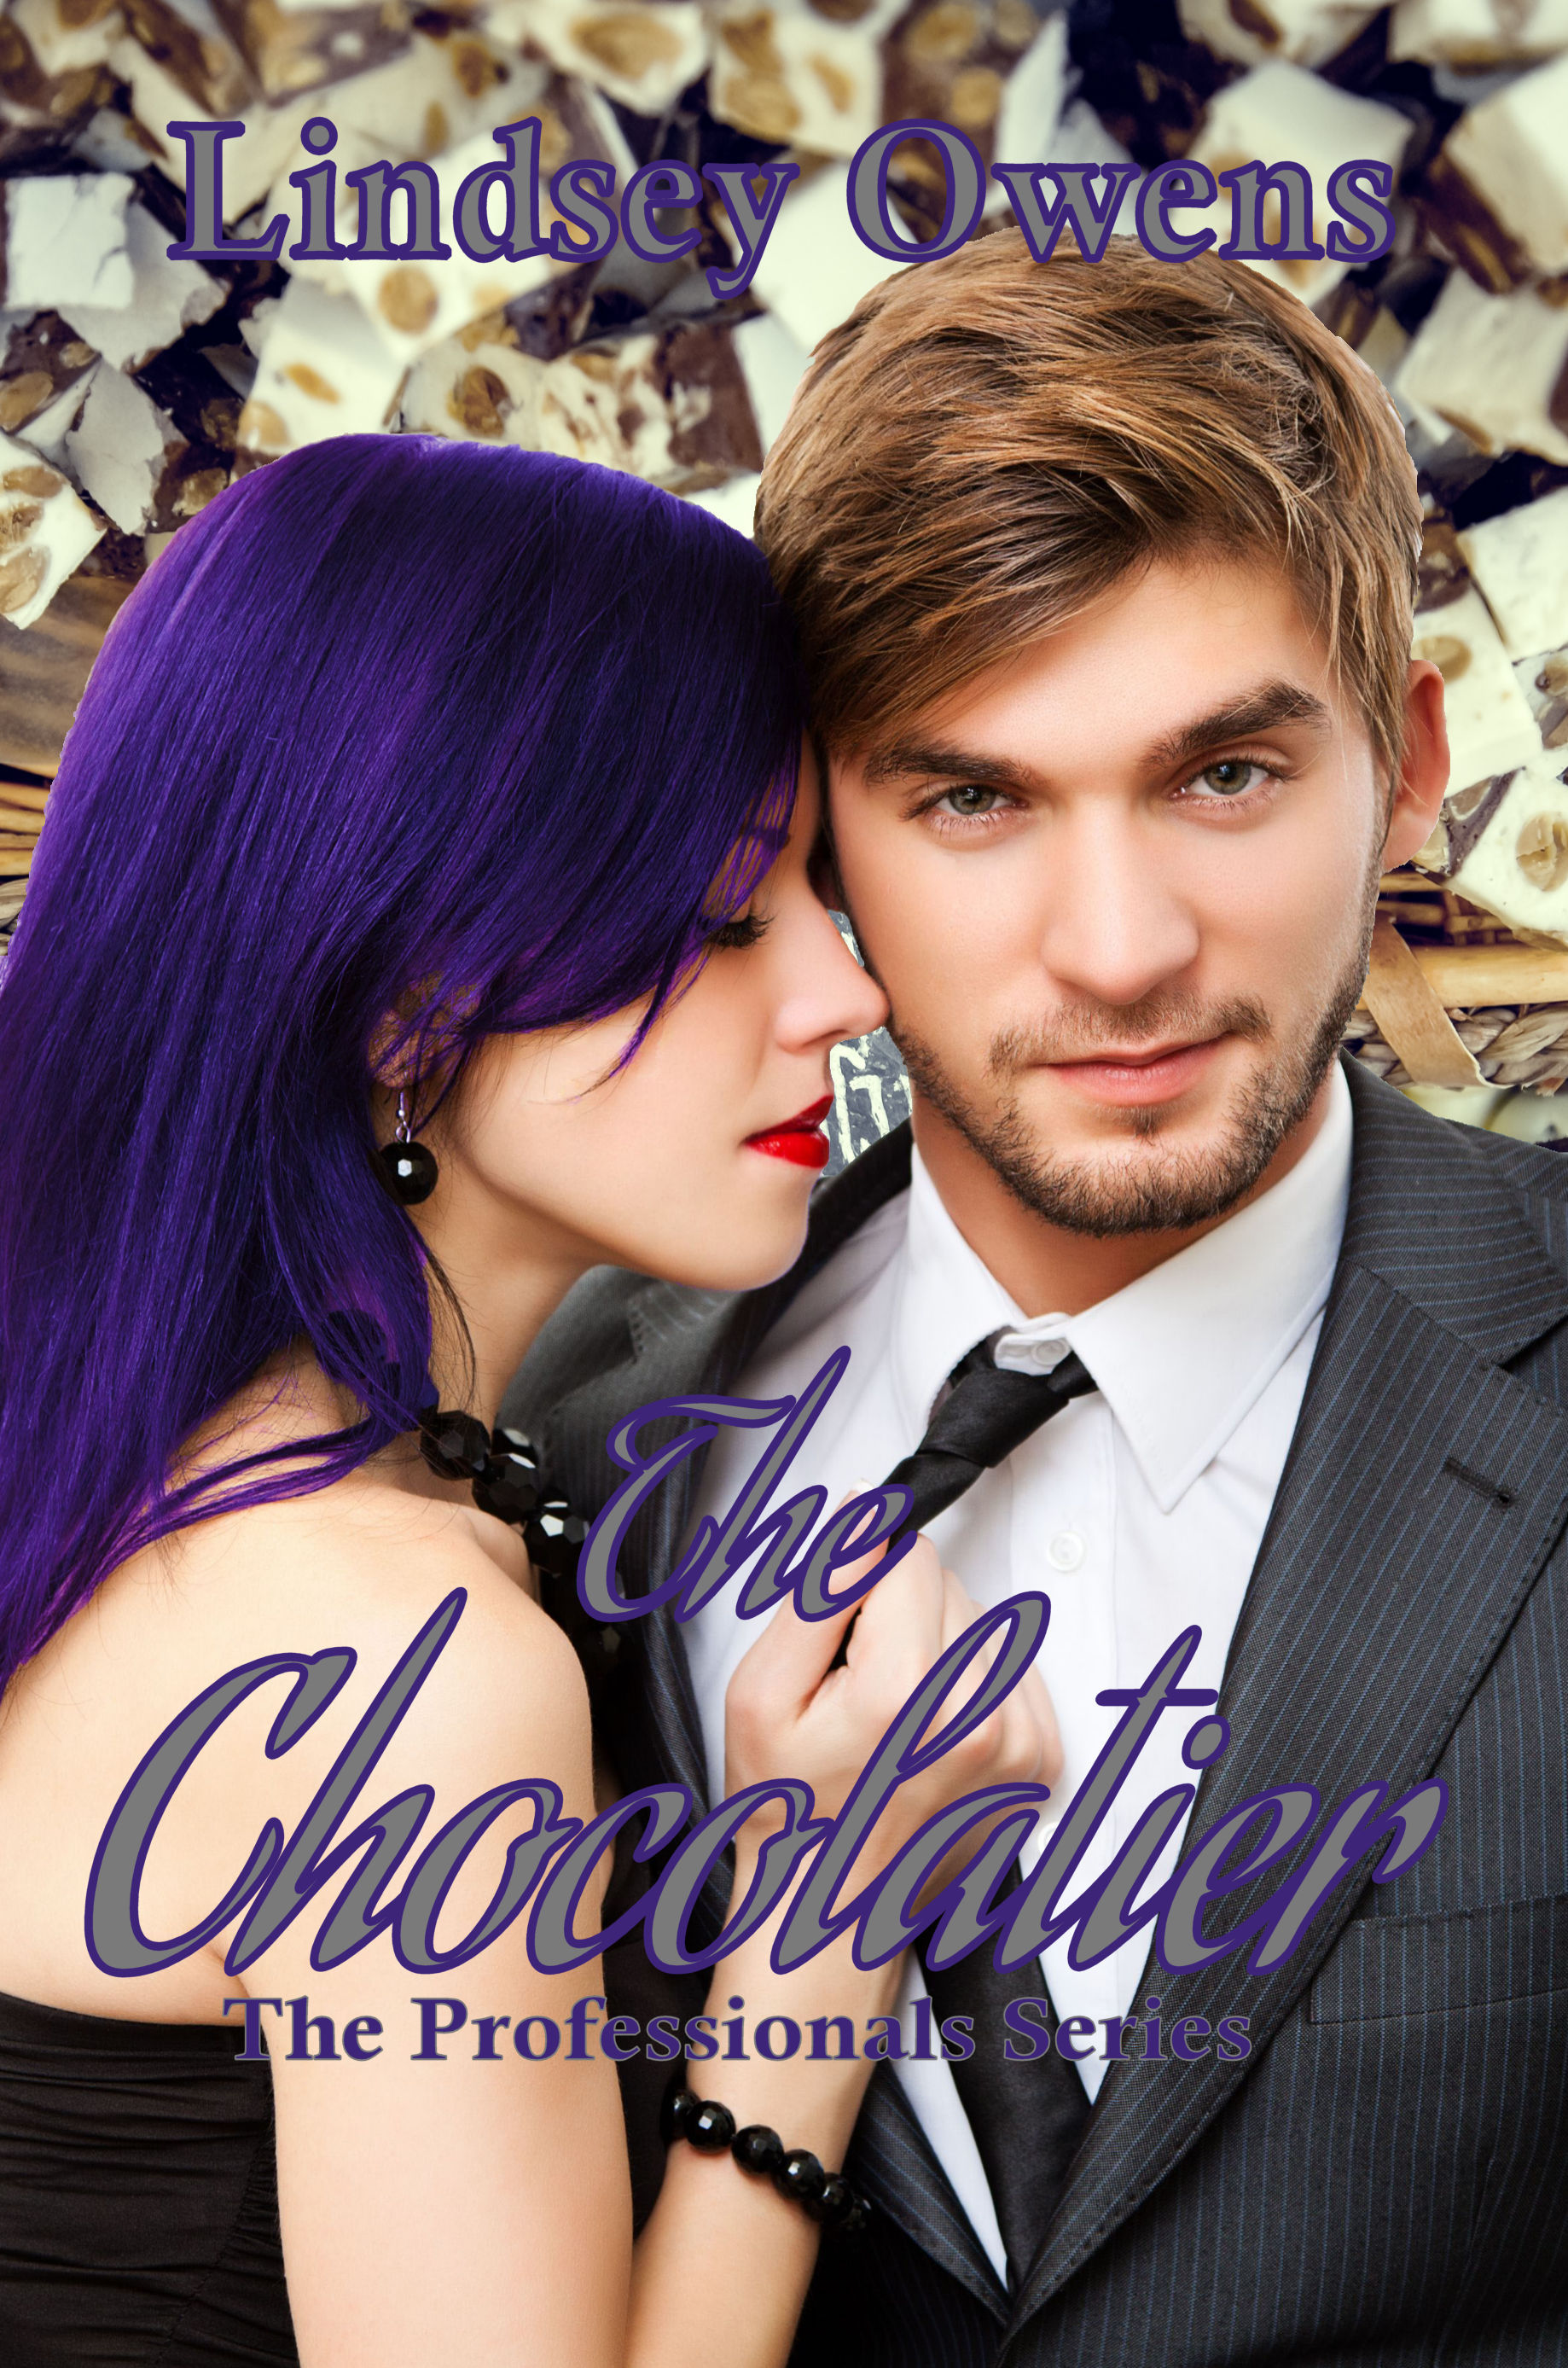 The Chocolatier (The Professionals, #1) Lindsey Owens